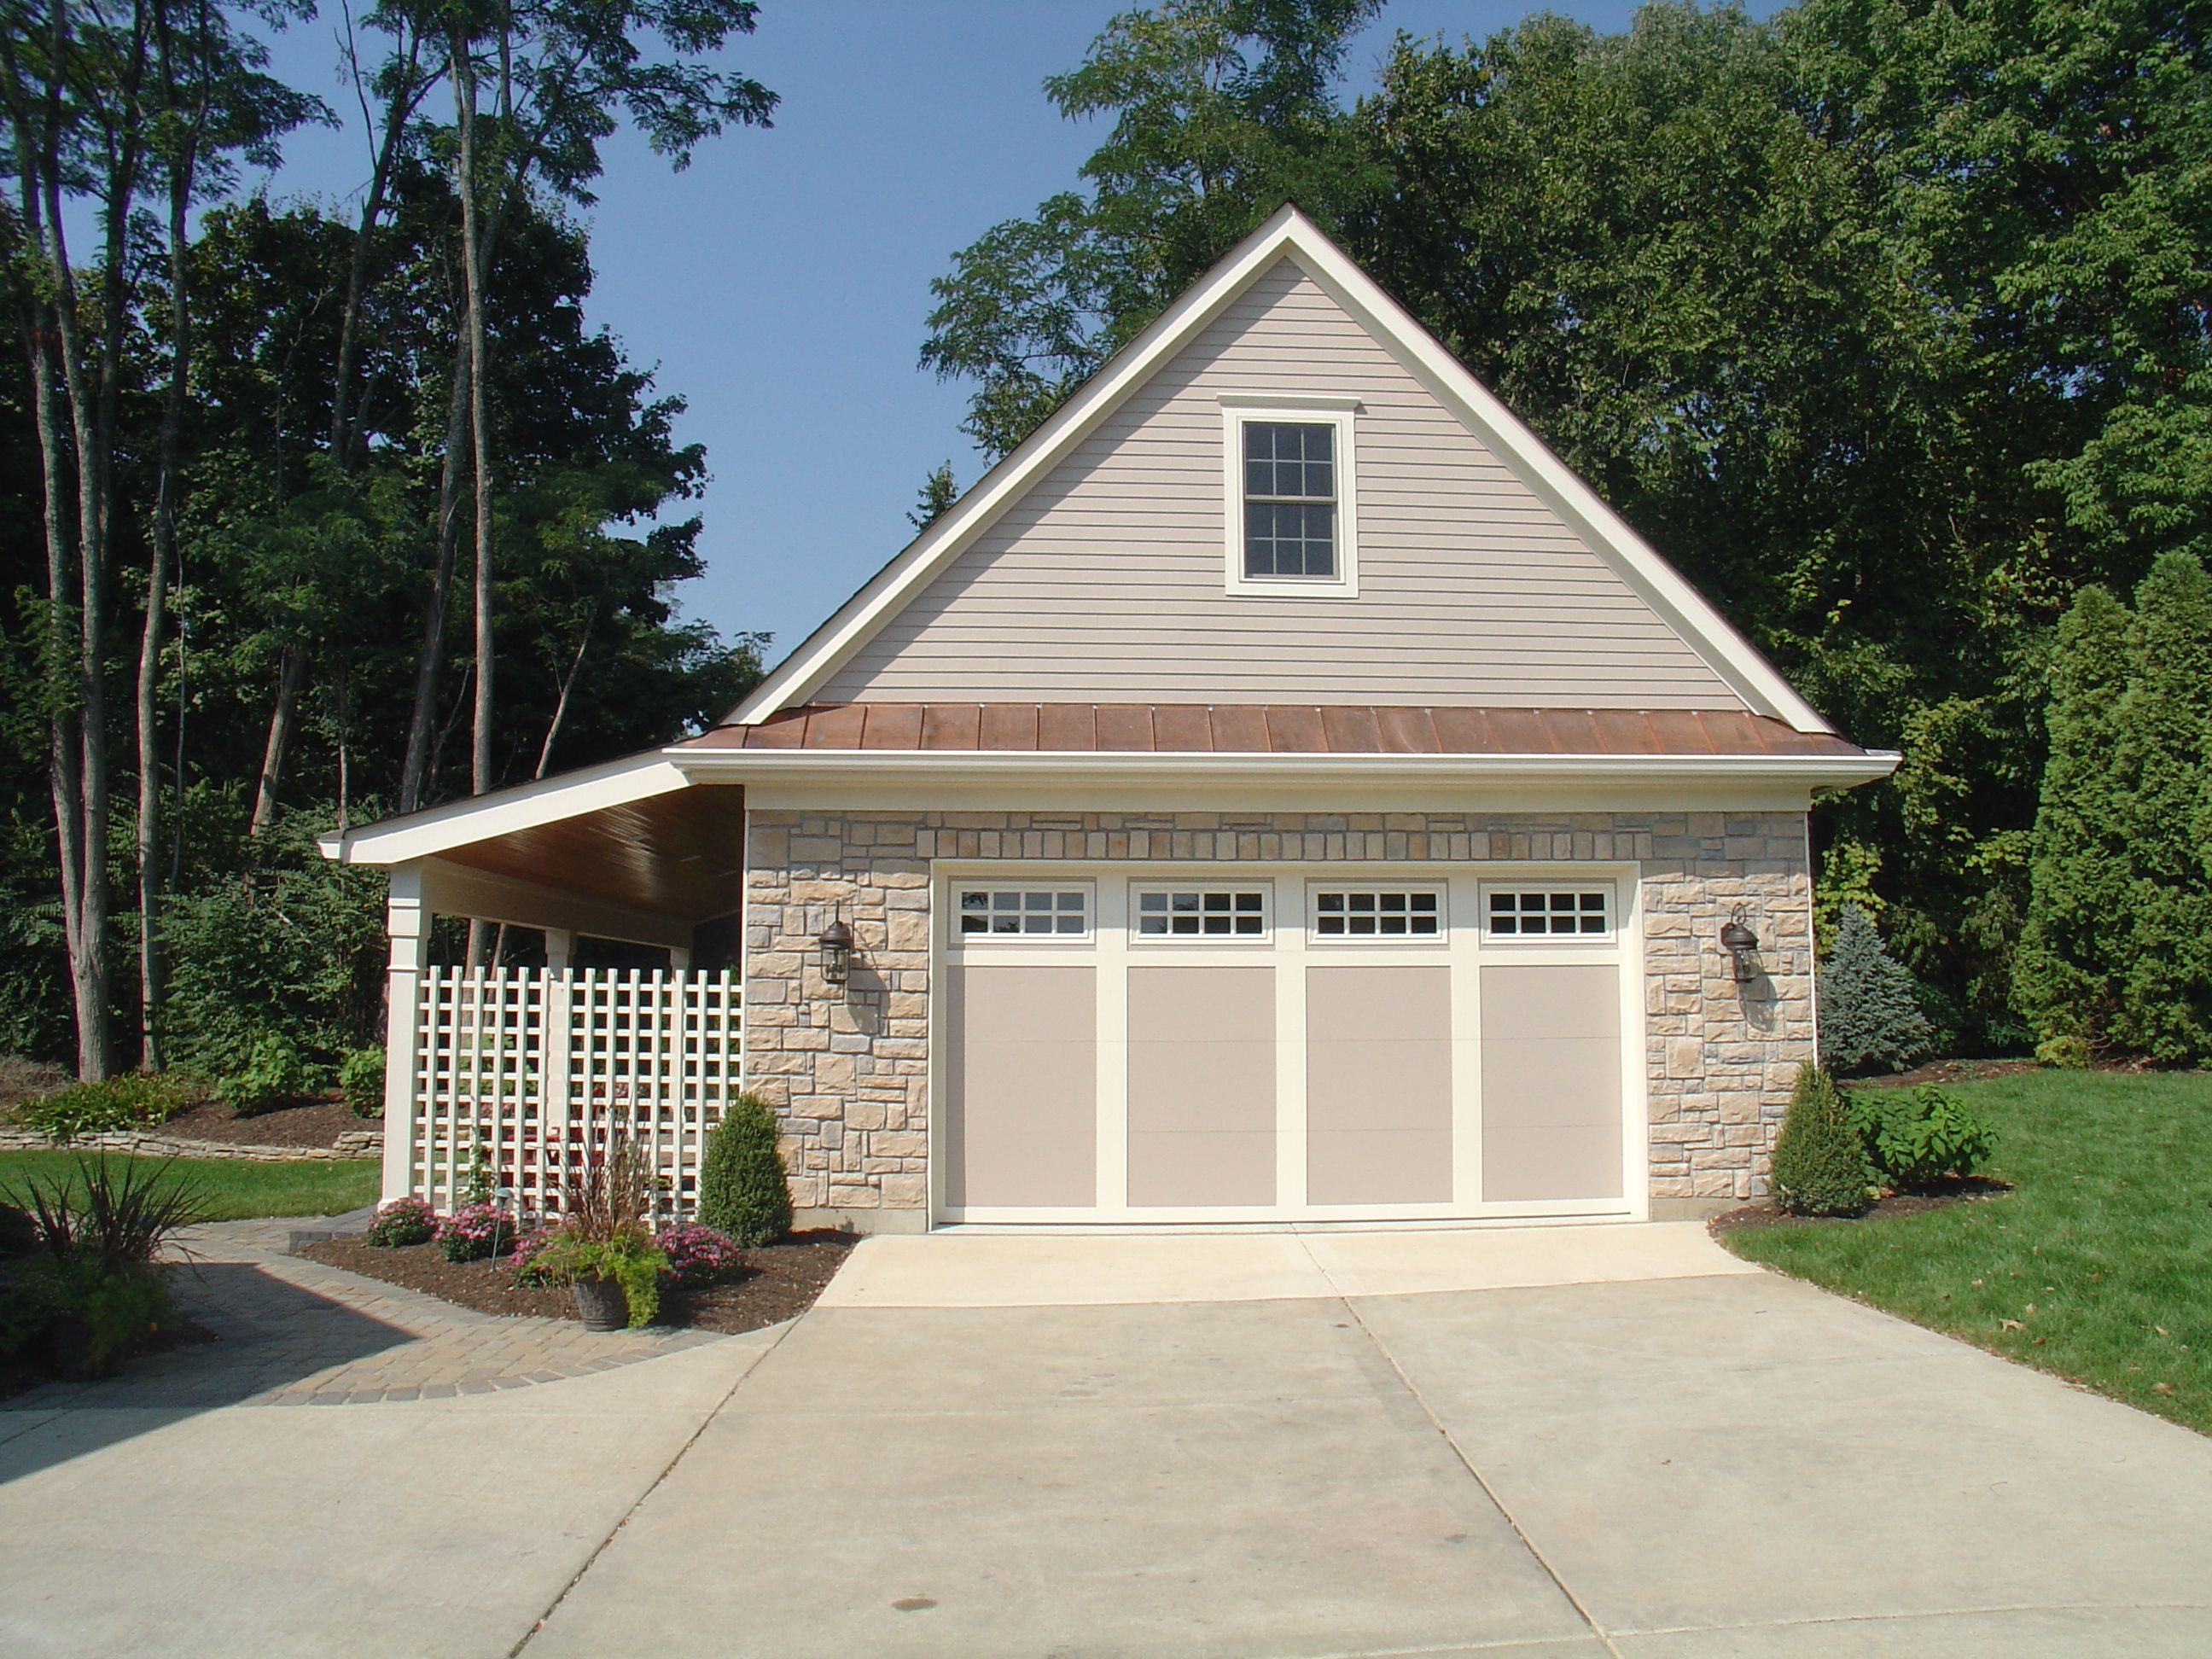 another version of a detached garage with porch to the